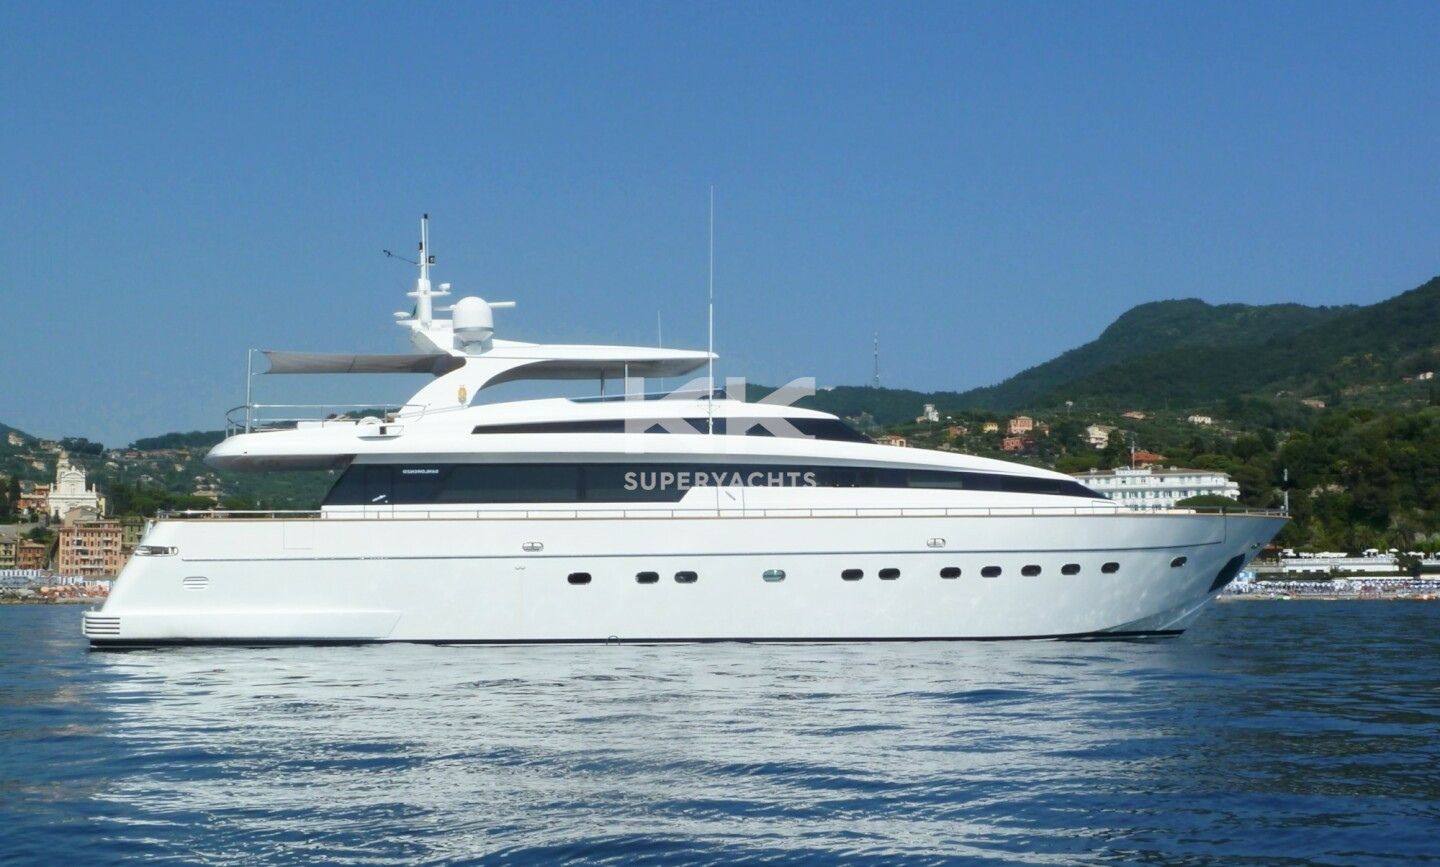 Sud yacht for Sale